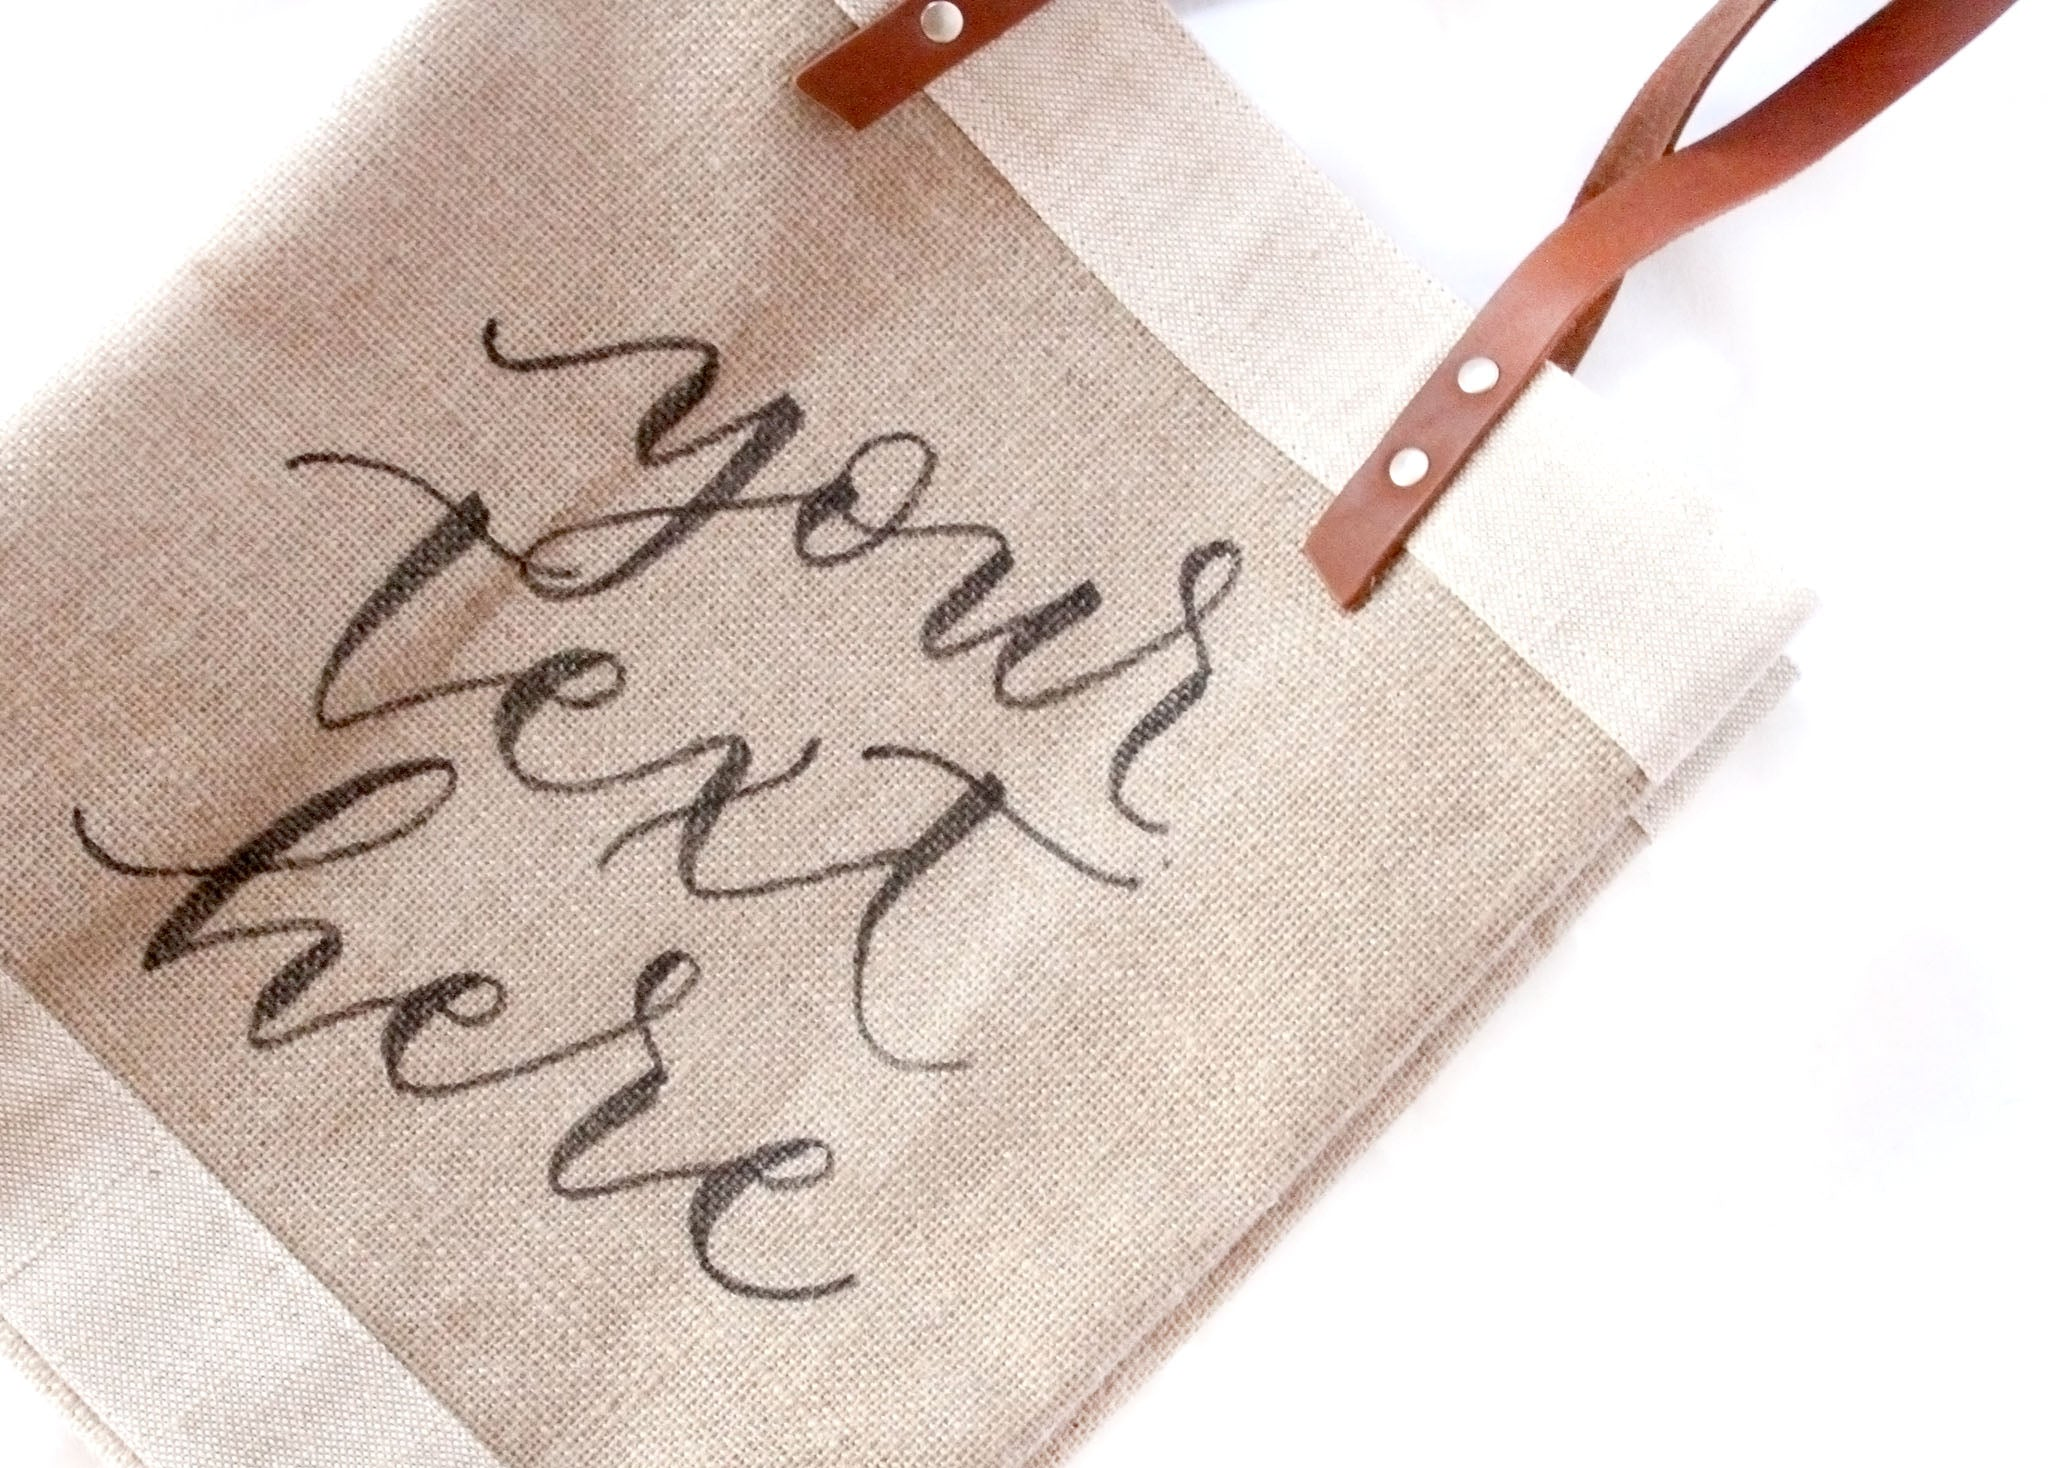 Collaboration: Customizable Long-Handle Calligraphy Tote, Available August 18th